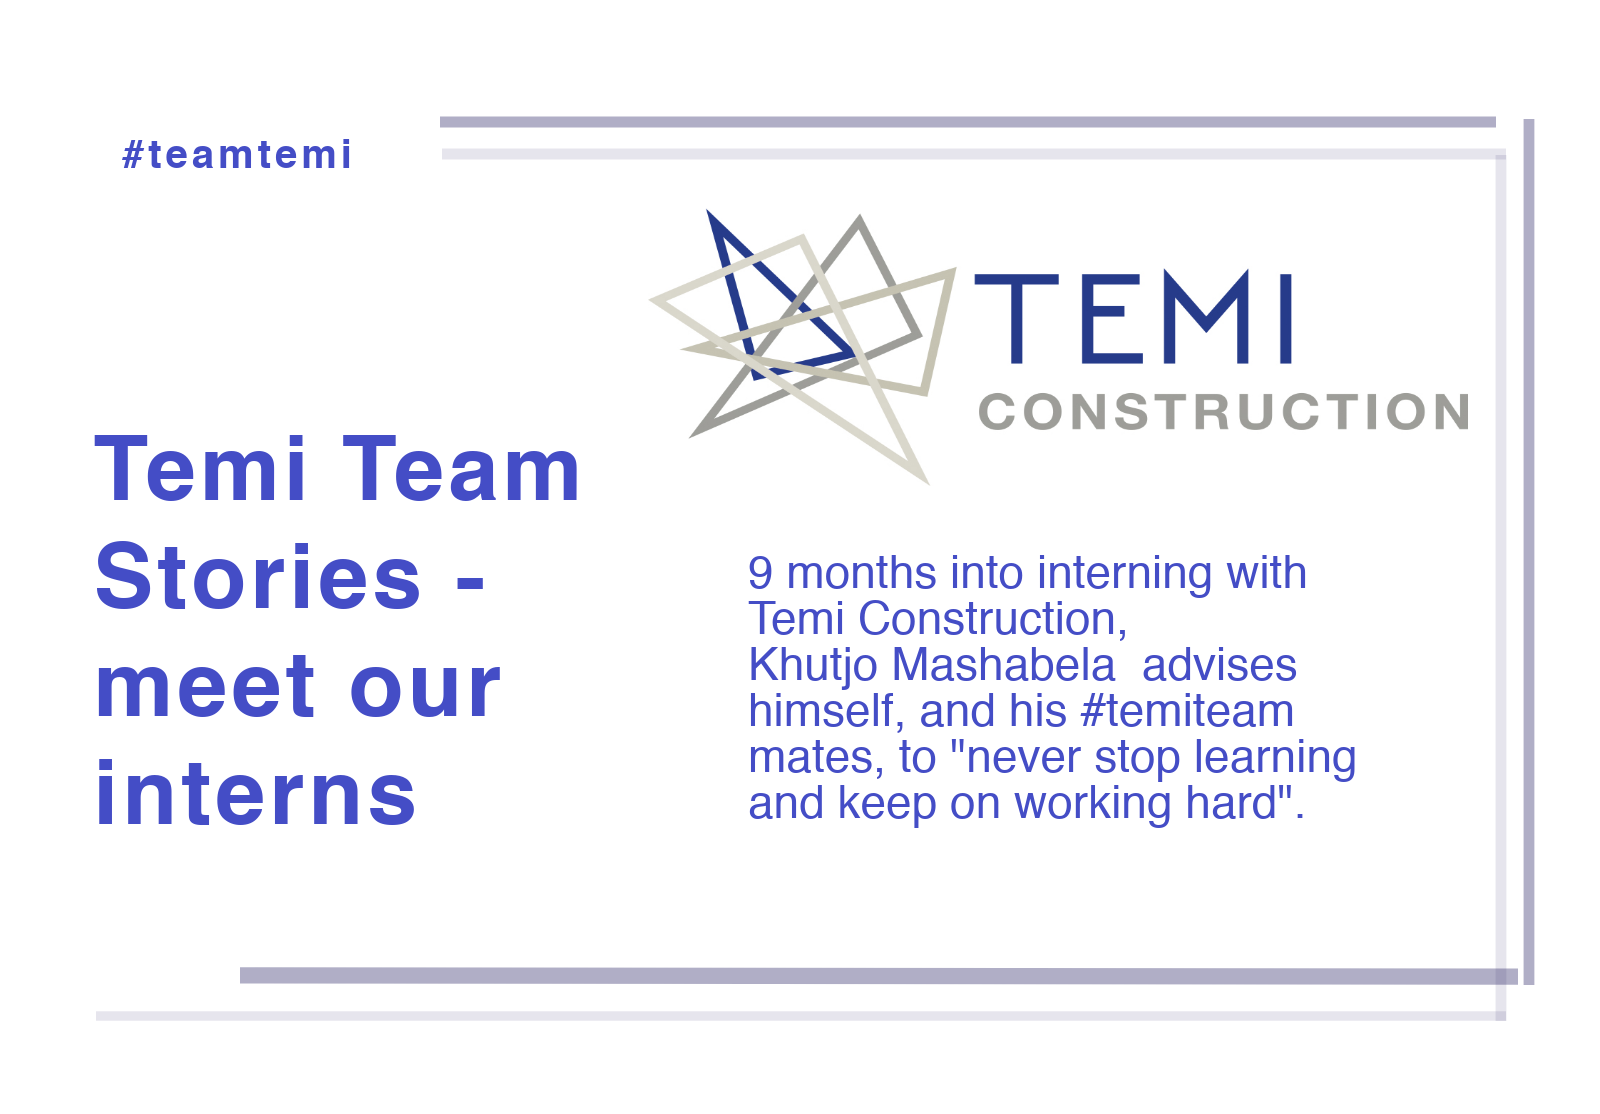 000 1 - Temi Team: Intern Stories - Khutjo